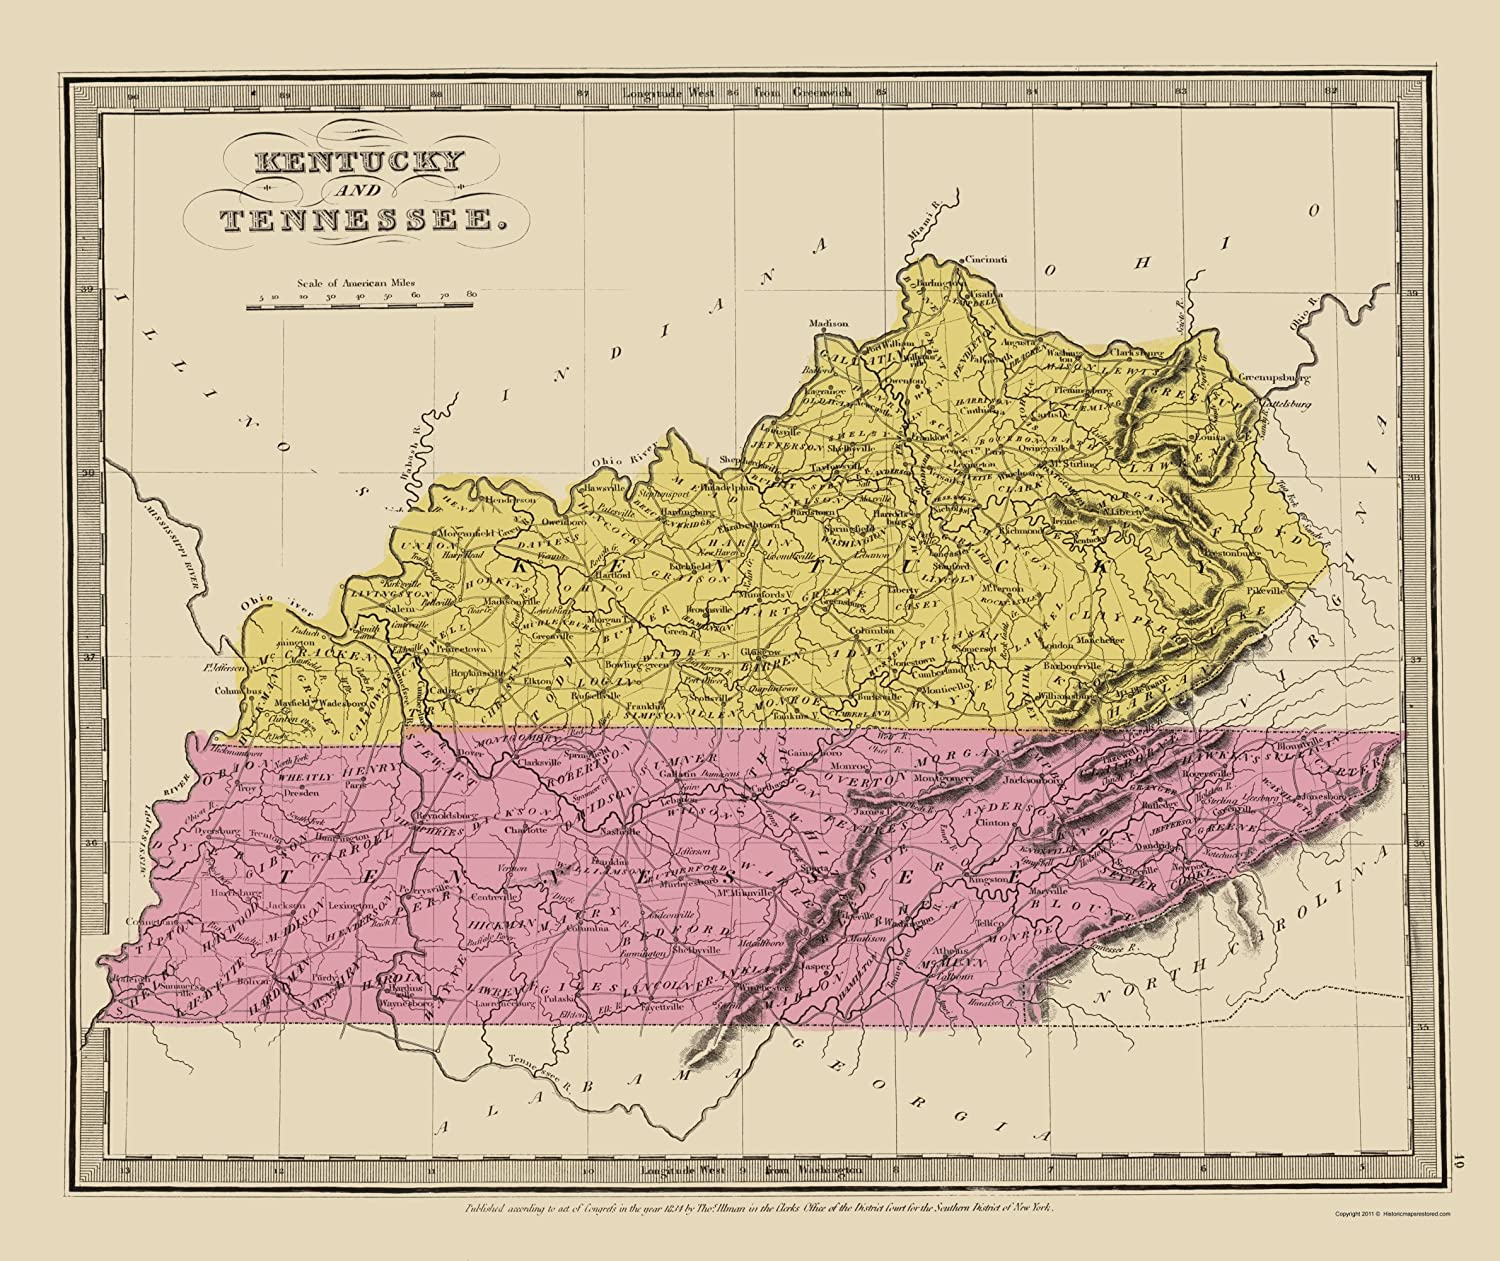 State Map Kentucky.Amazon Com Old State Map Kentucky Tennessee Illman 1834 23 X